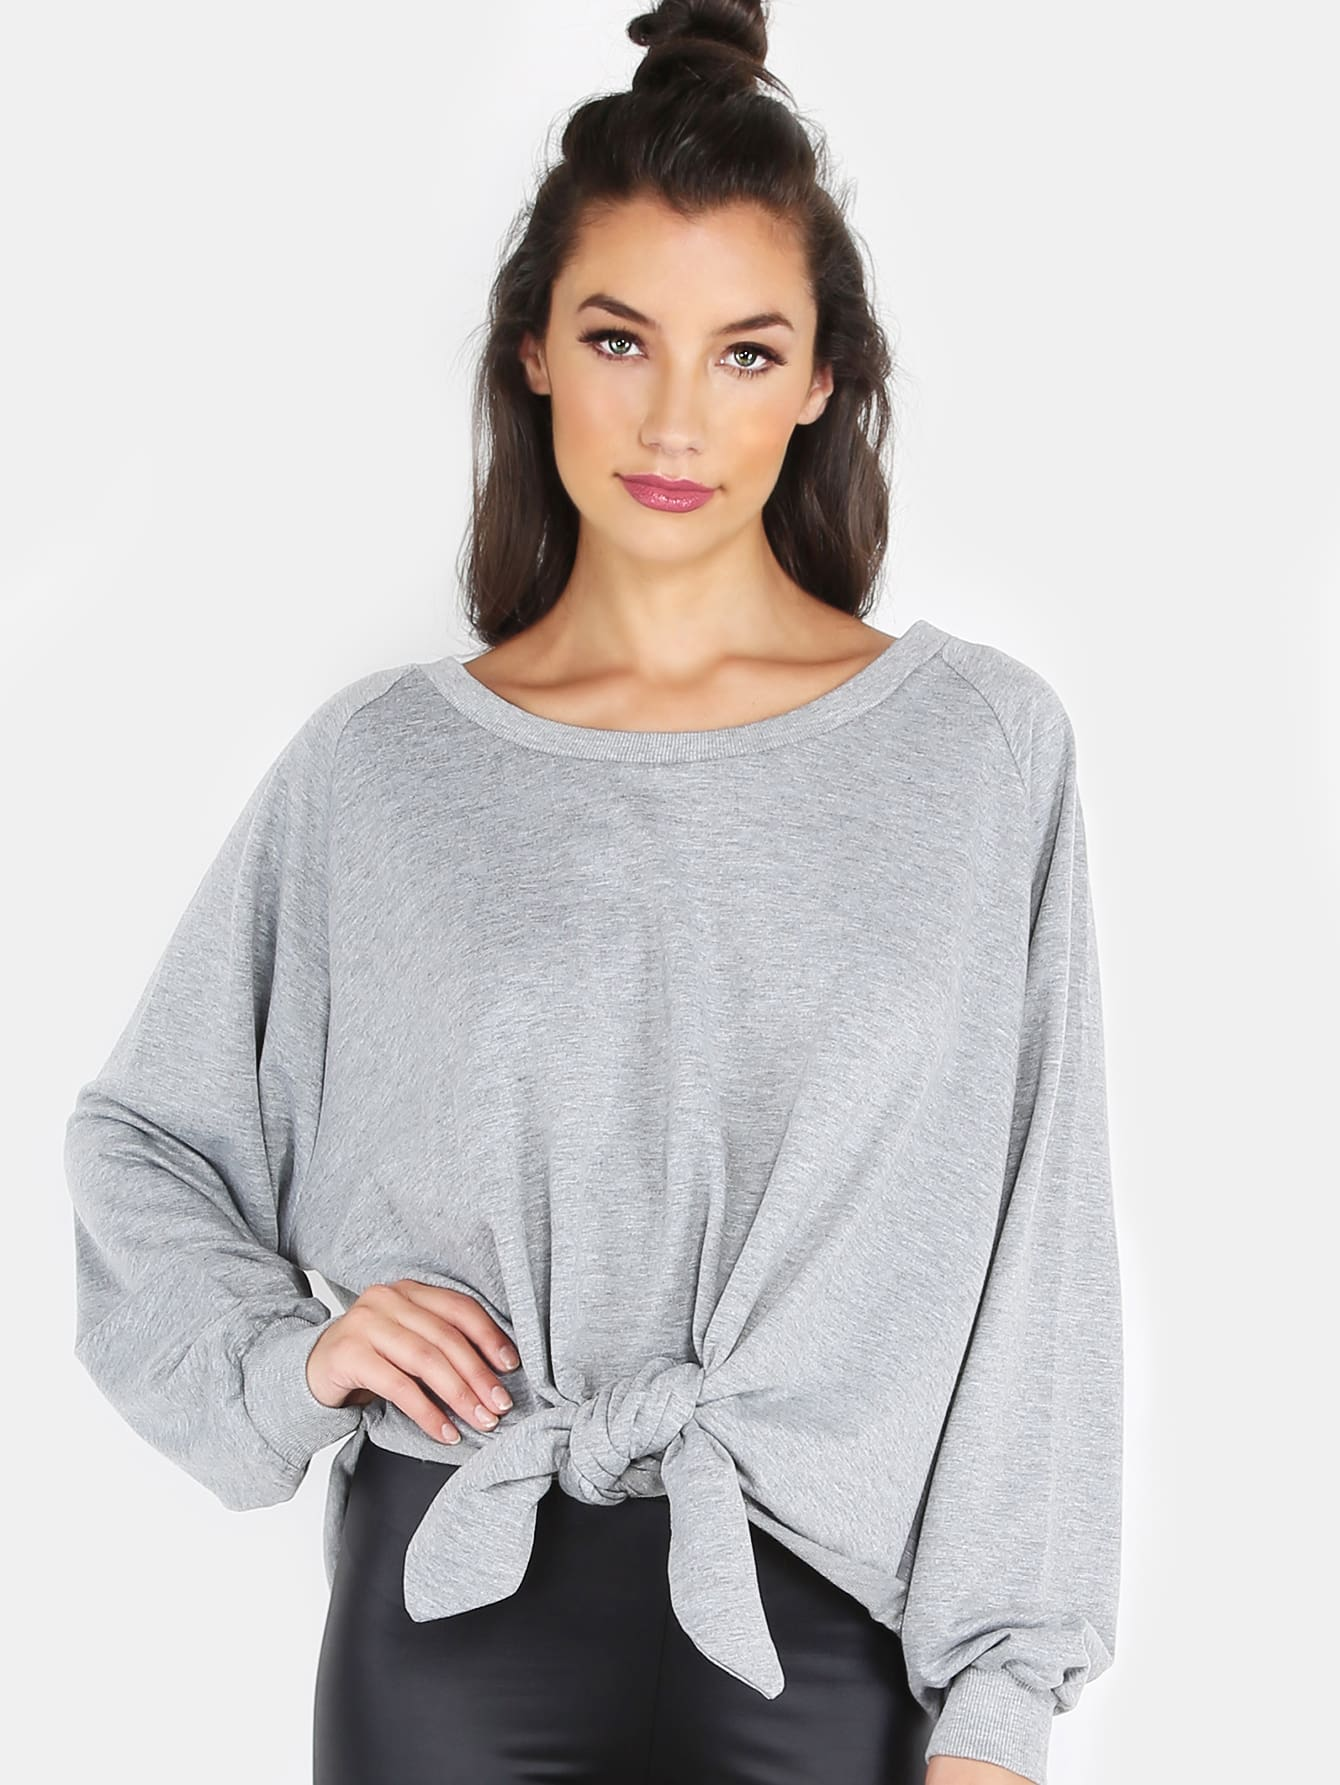 Knotted Crew Neck Sweater HEATHER GREY pink crew neck bat sleeves sweater